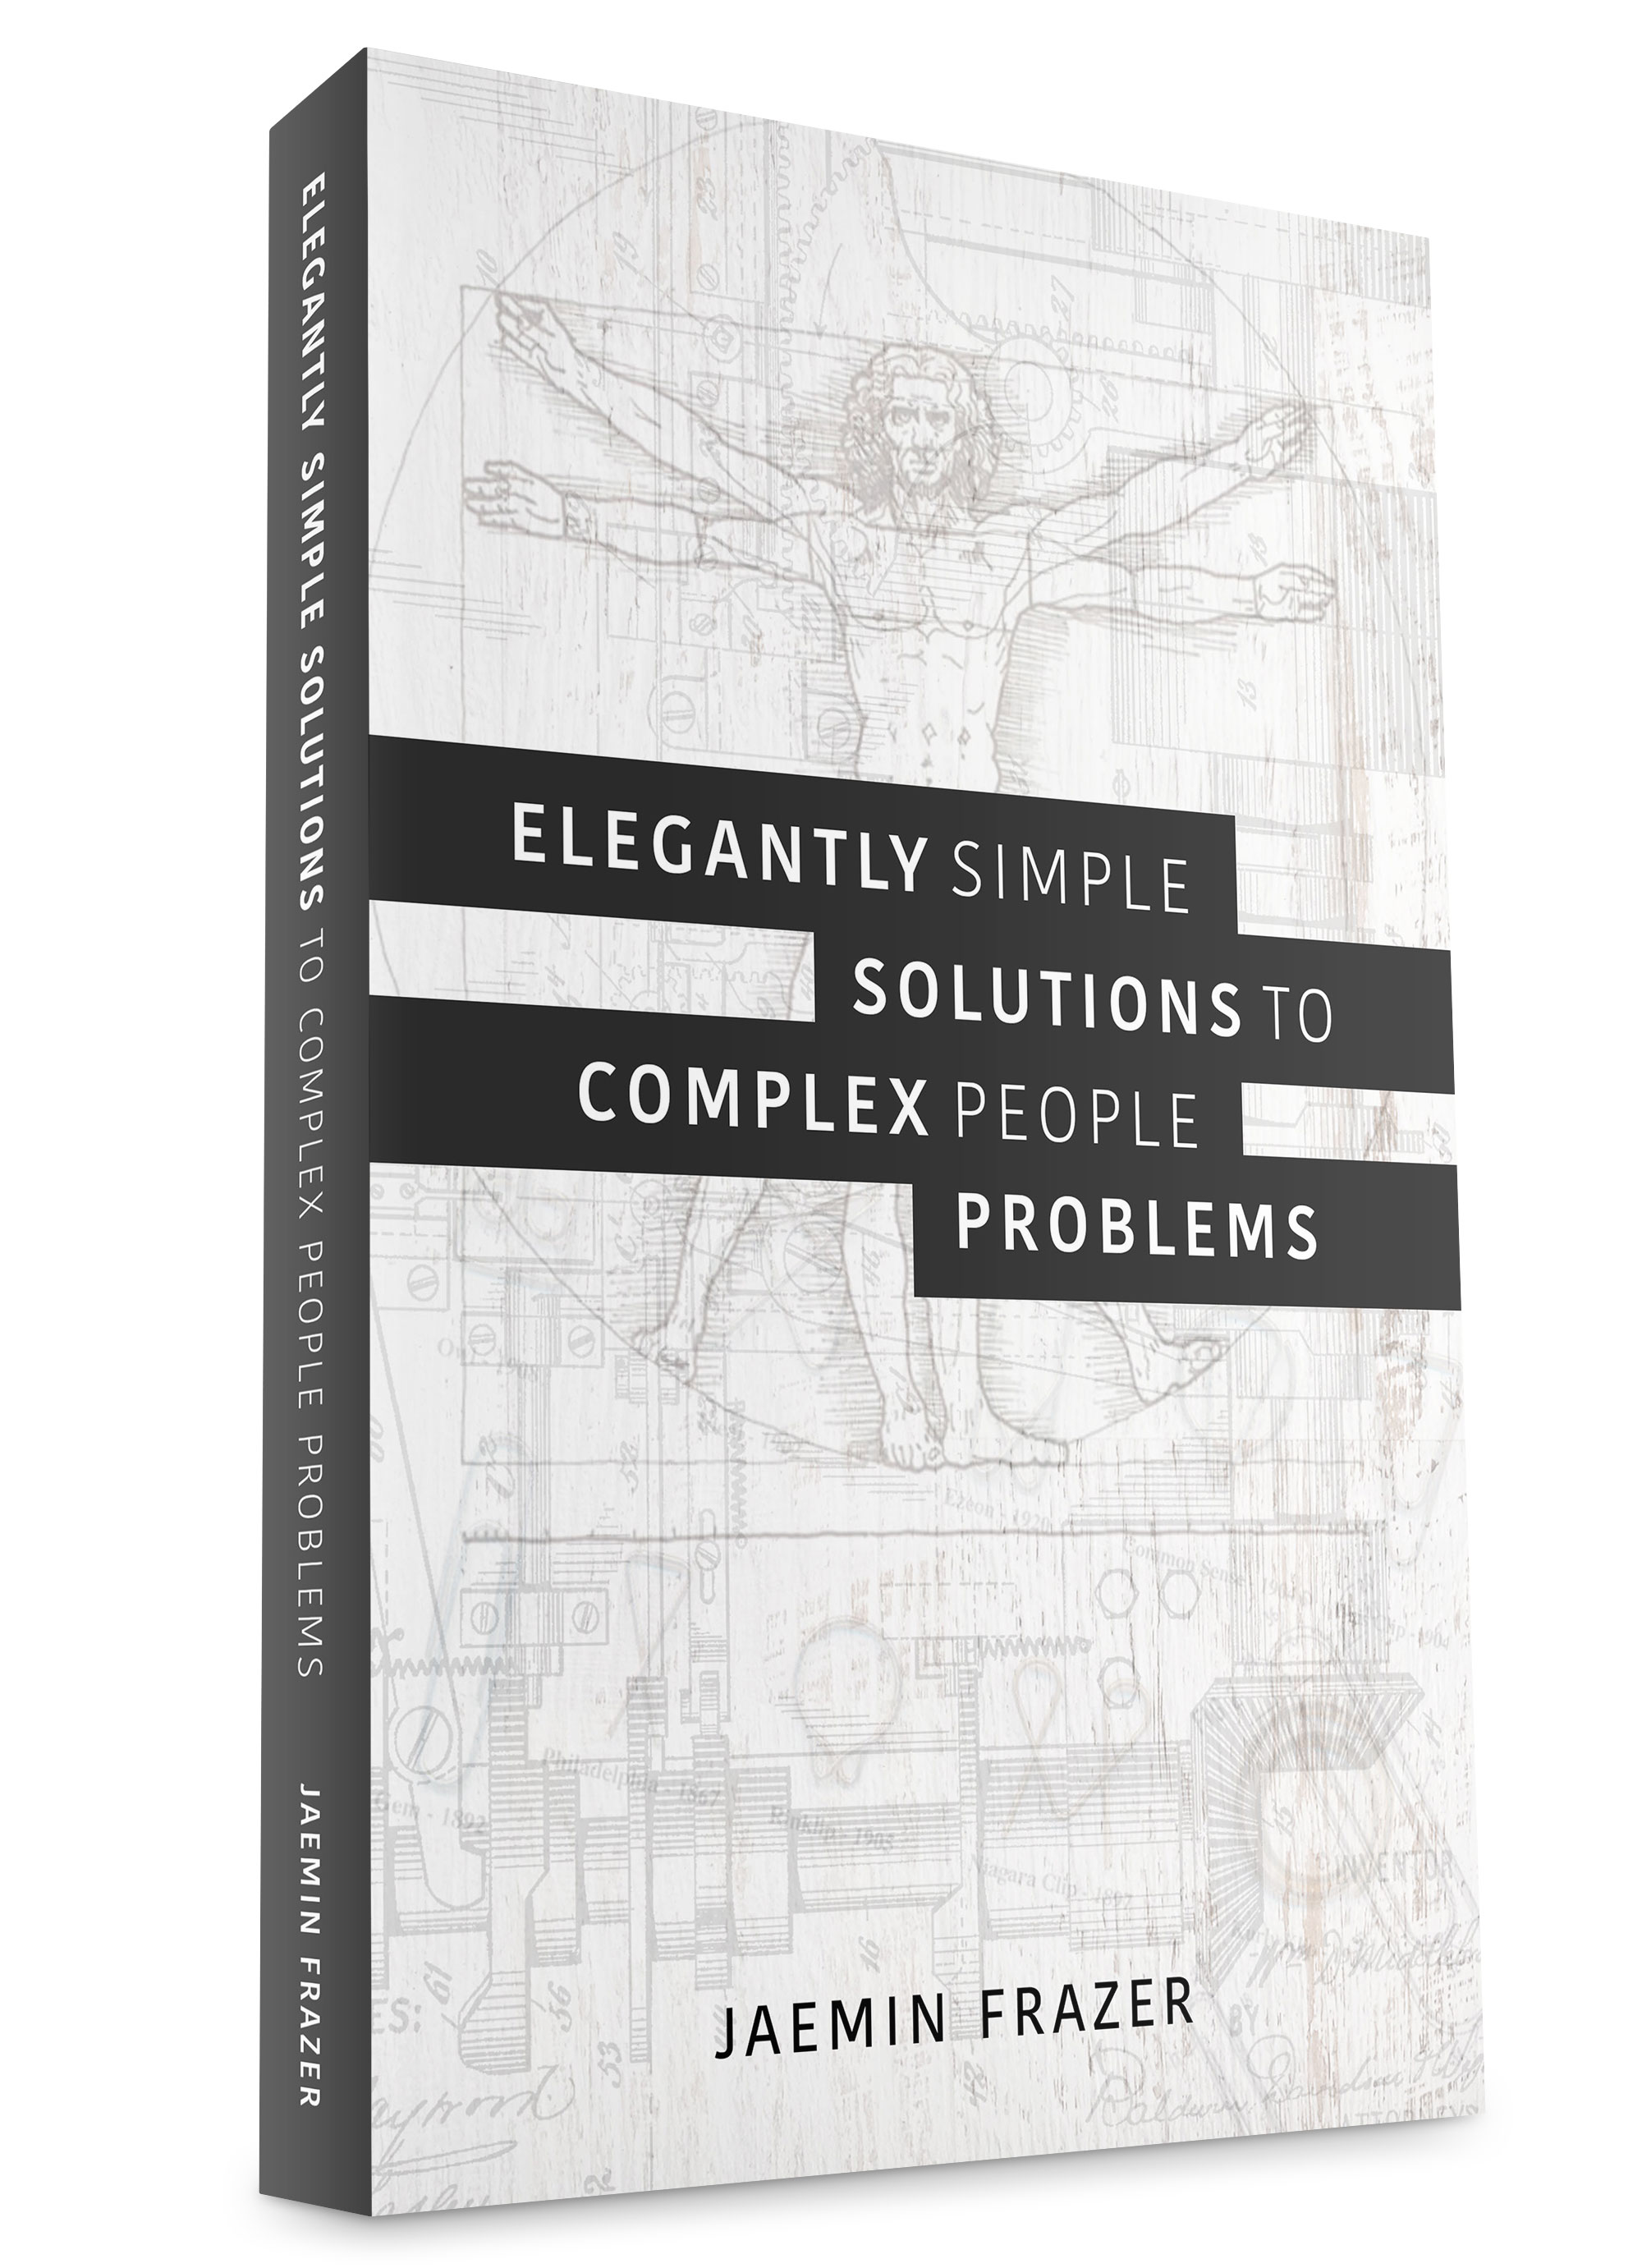 Elegantly Simple Solutions to Complex People Problems   Paperback $20.00 + postage